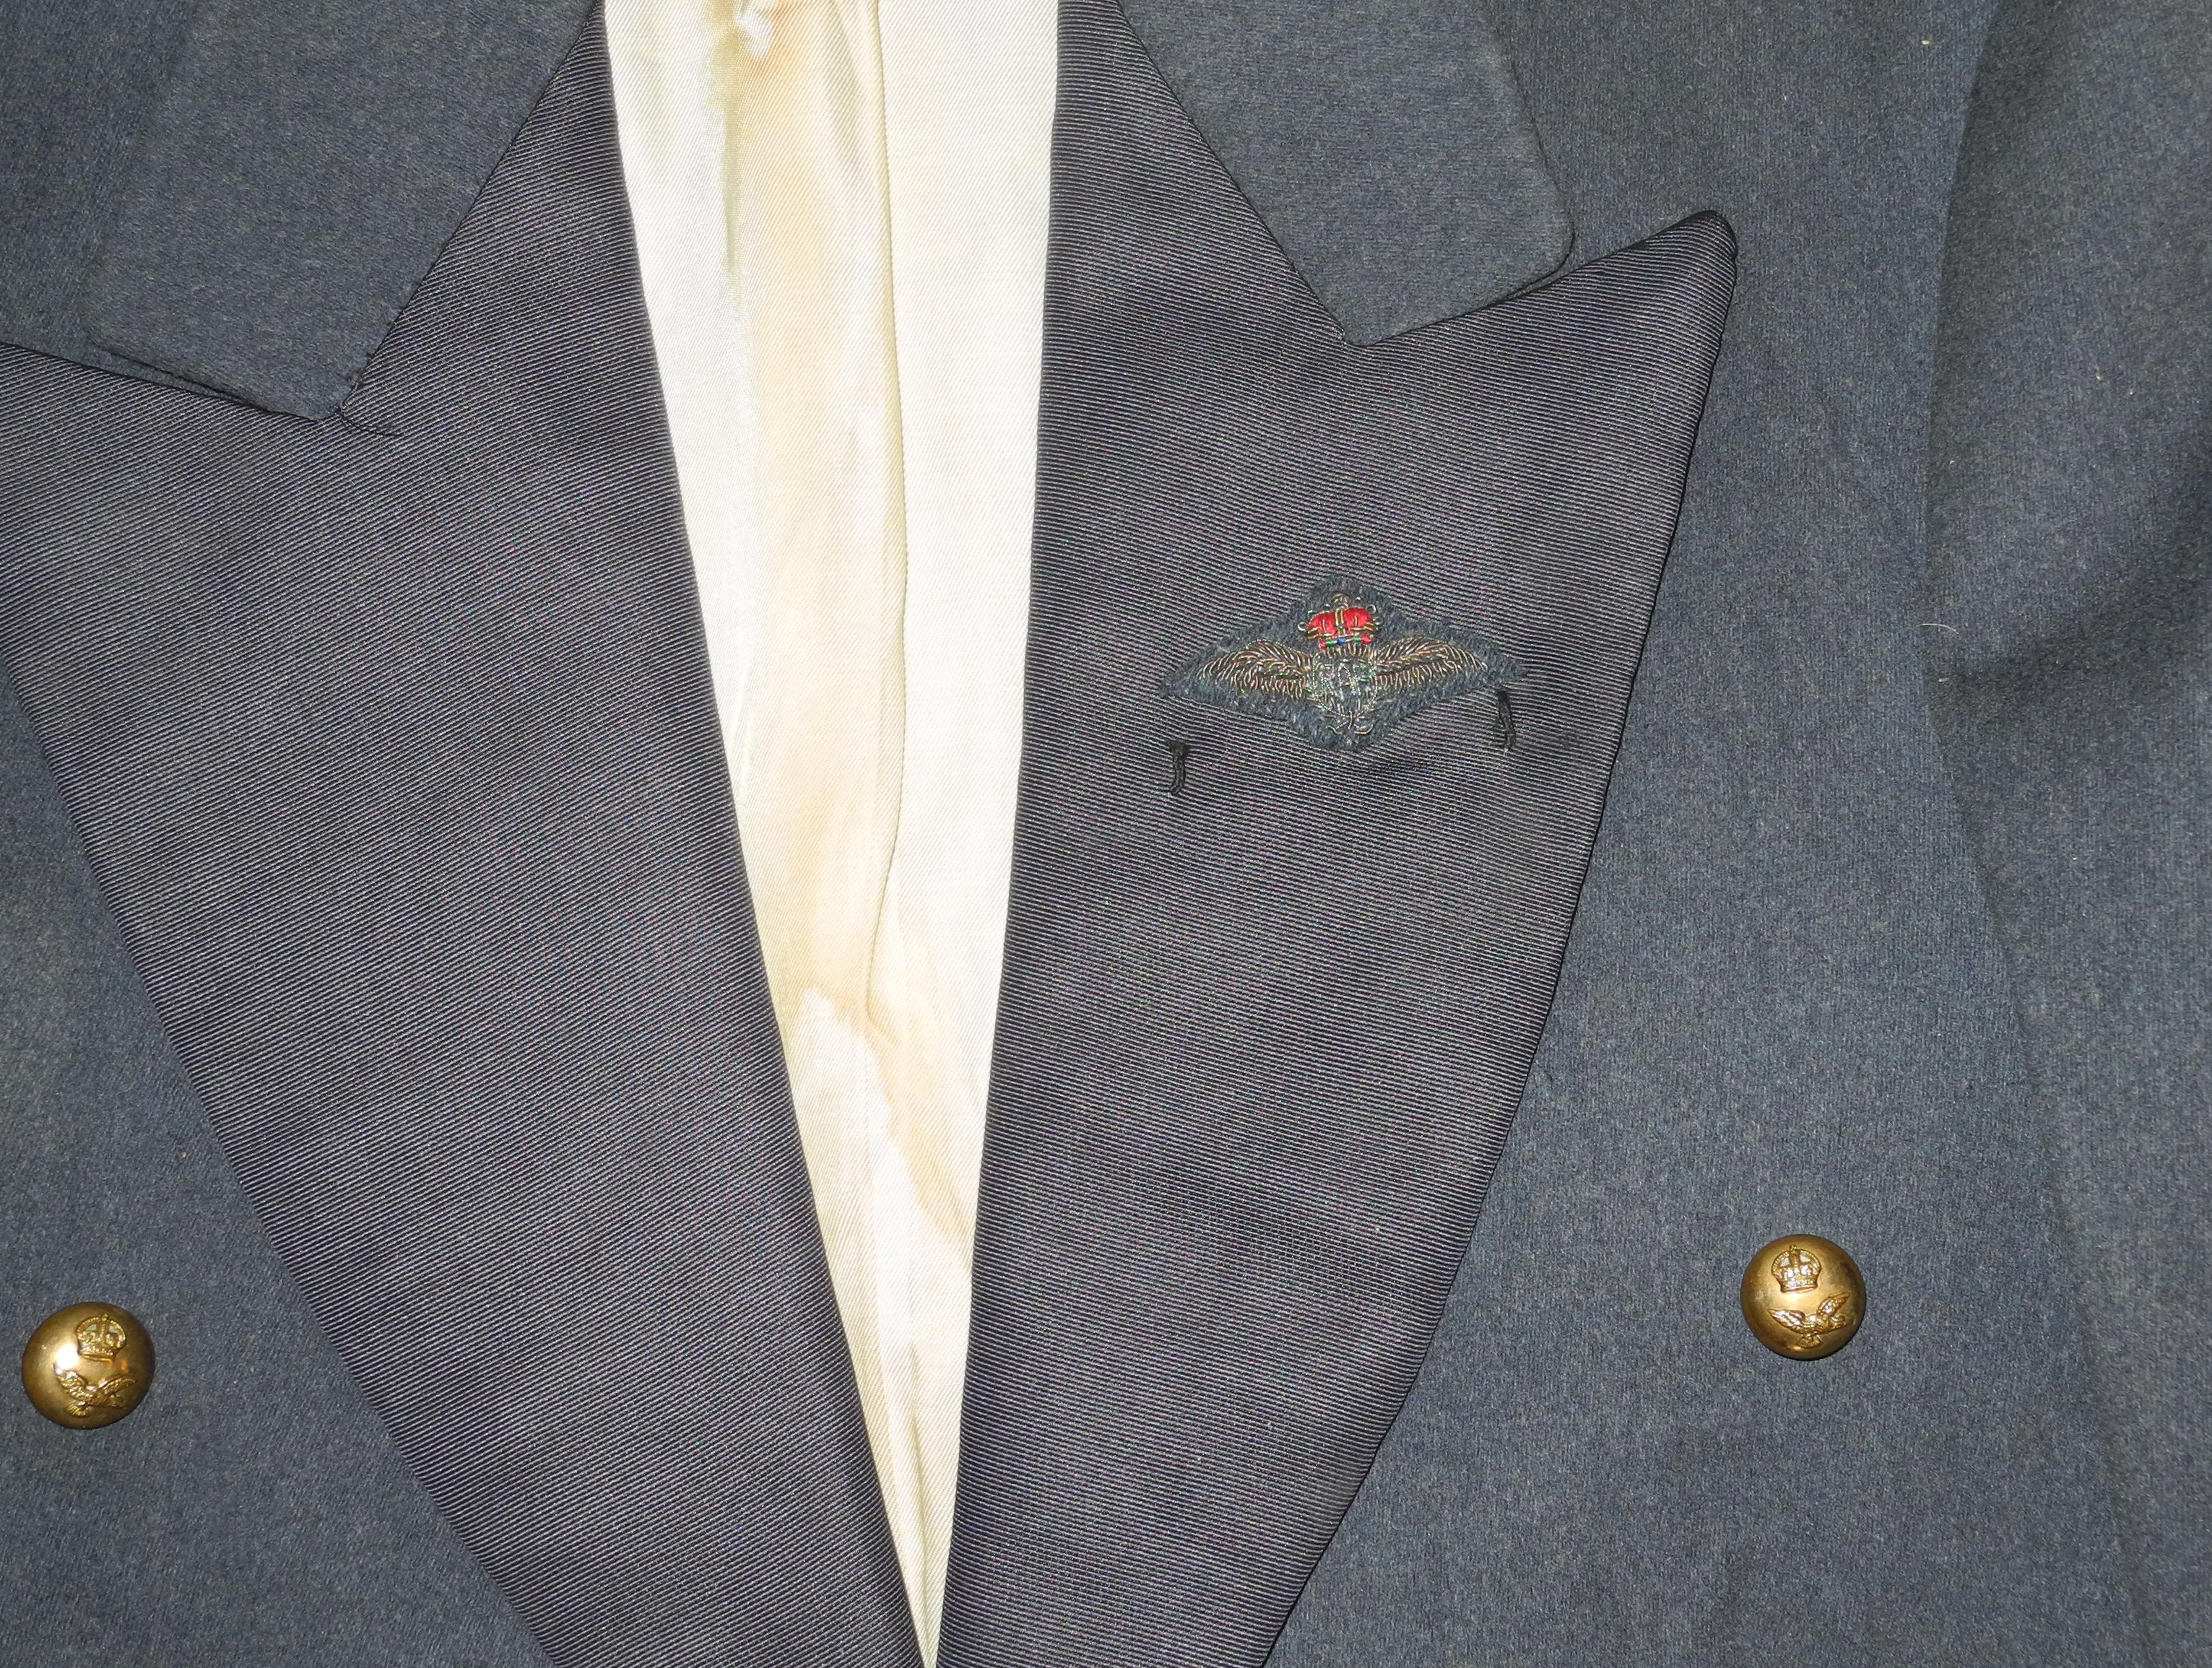 RAF mess dress jacket and waistcoat to a Battle of Britain pilot